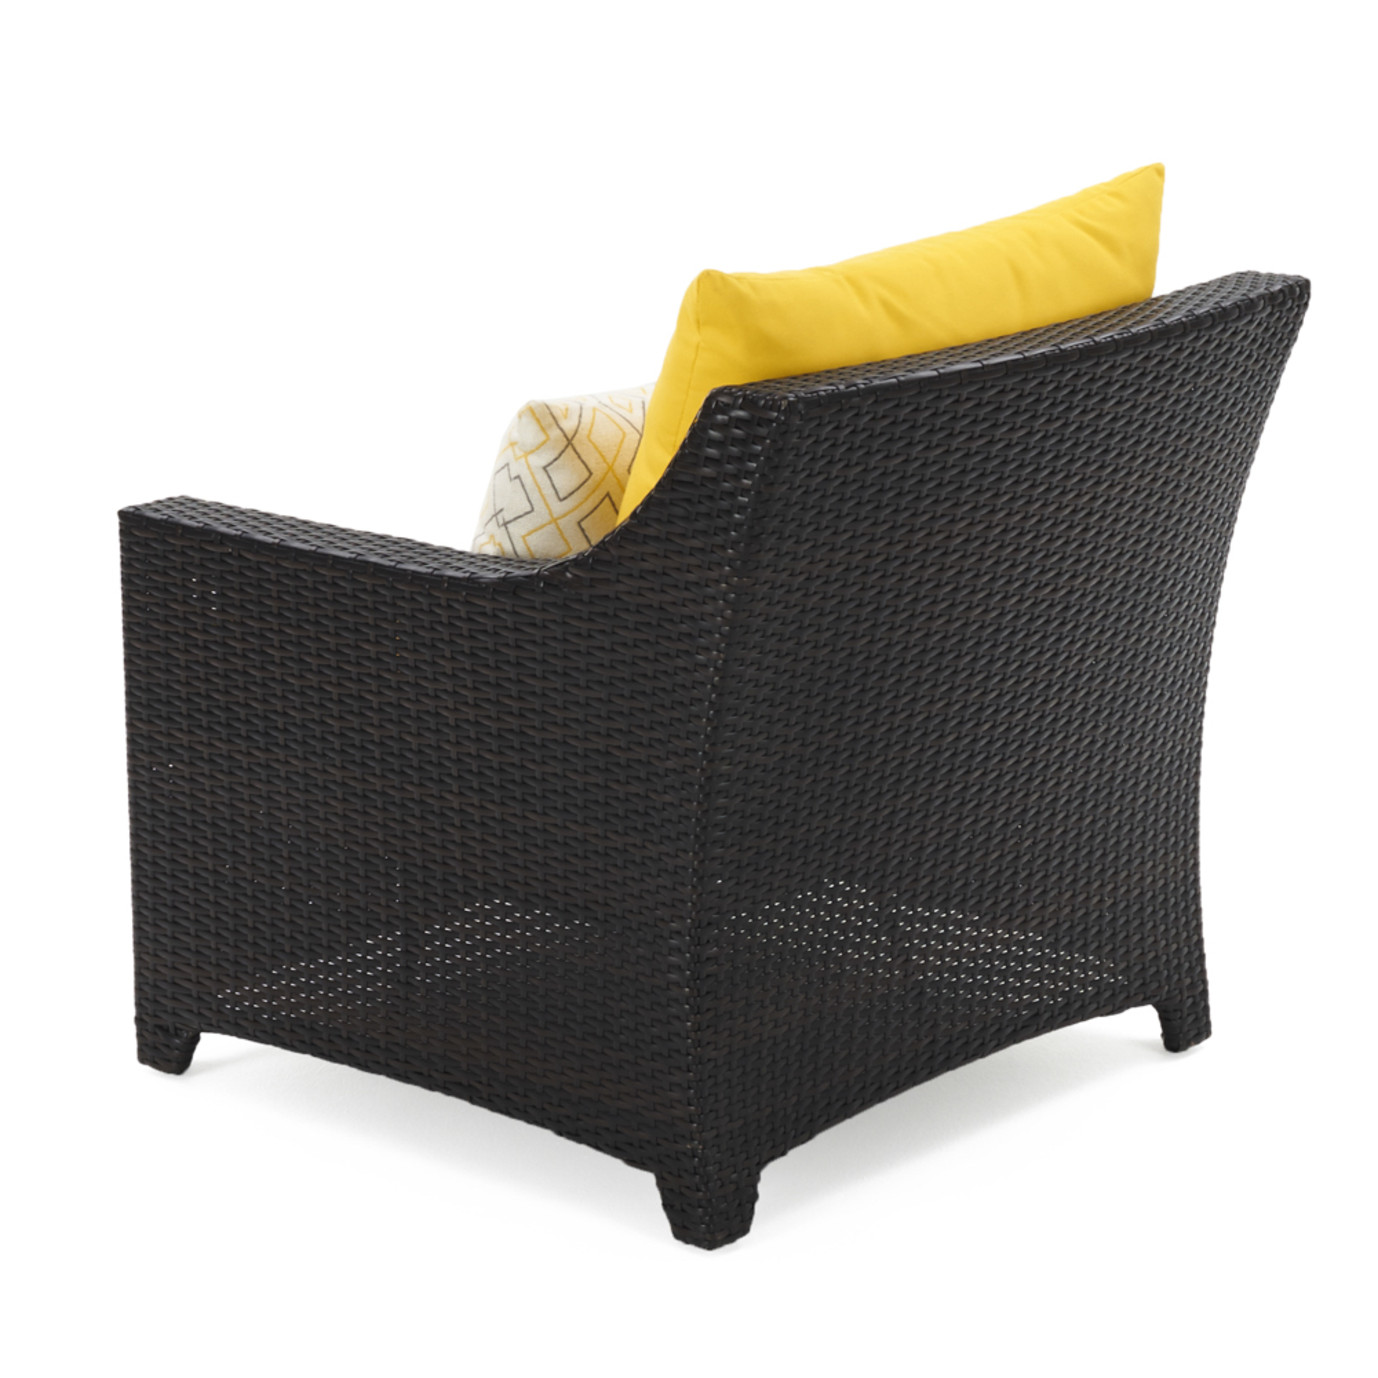 Deco™ Club Chairs and Side Table - Sunflower Yellow